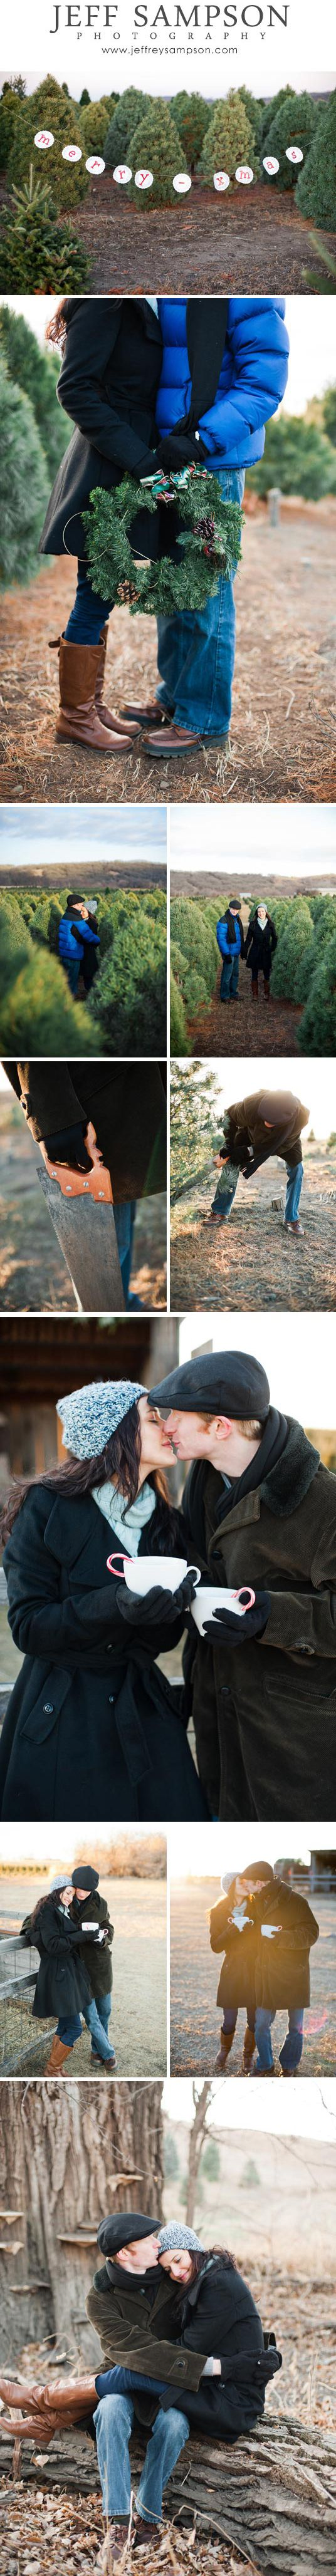 Sioux Falls Wedding Photographers | Jeff Sampson Photography